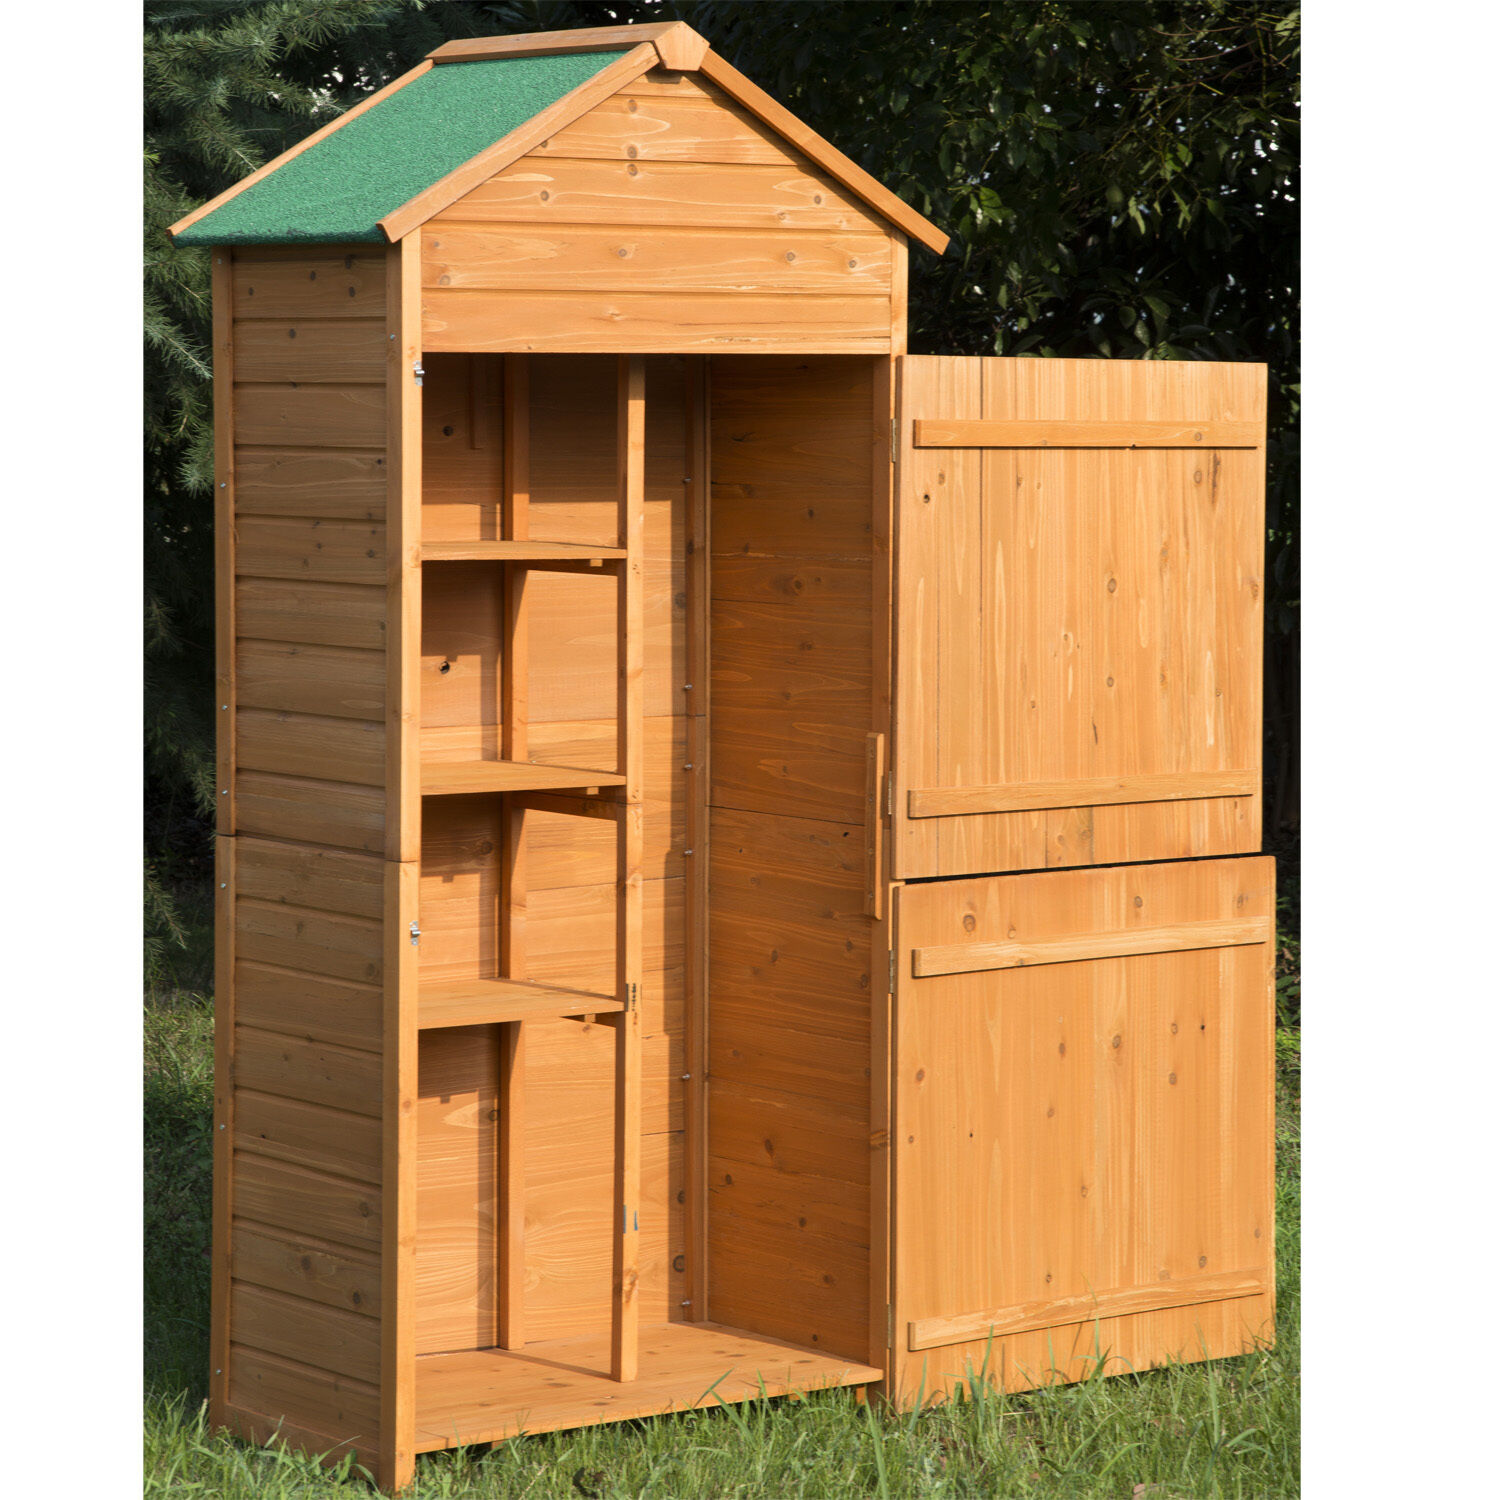 Wooden garden shed wood tool kit outdoor storage shelves for Wooden garden storage shed